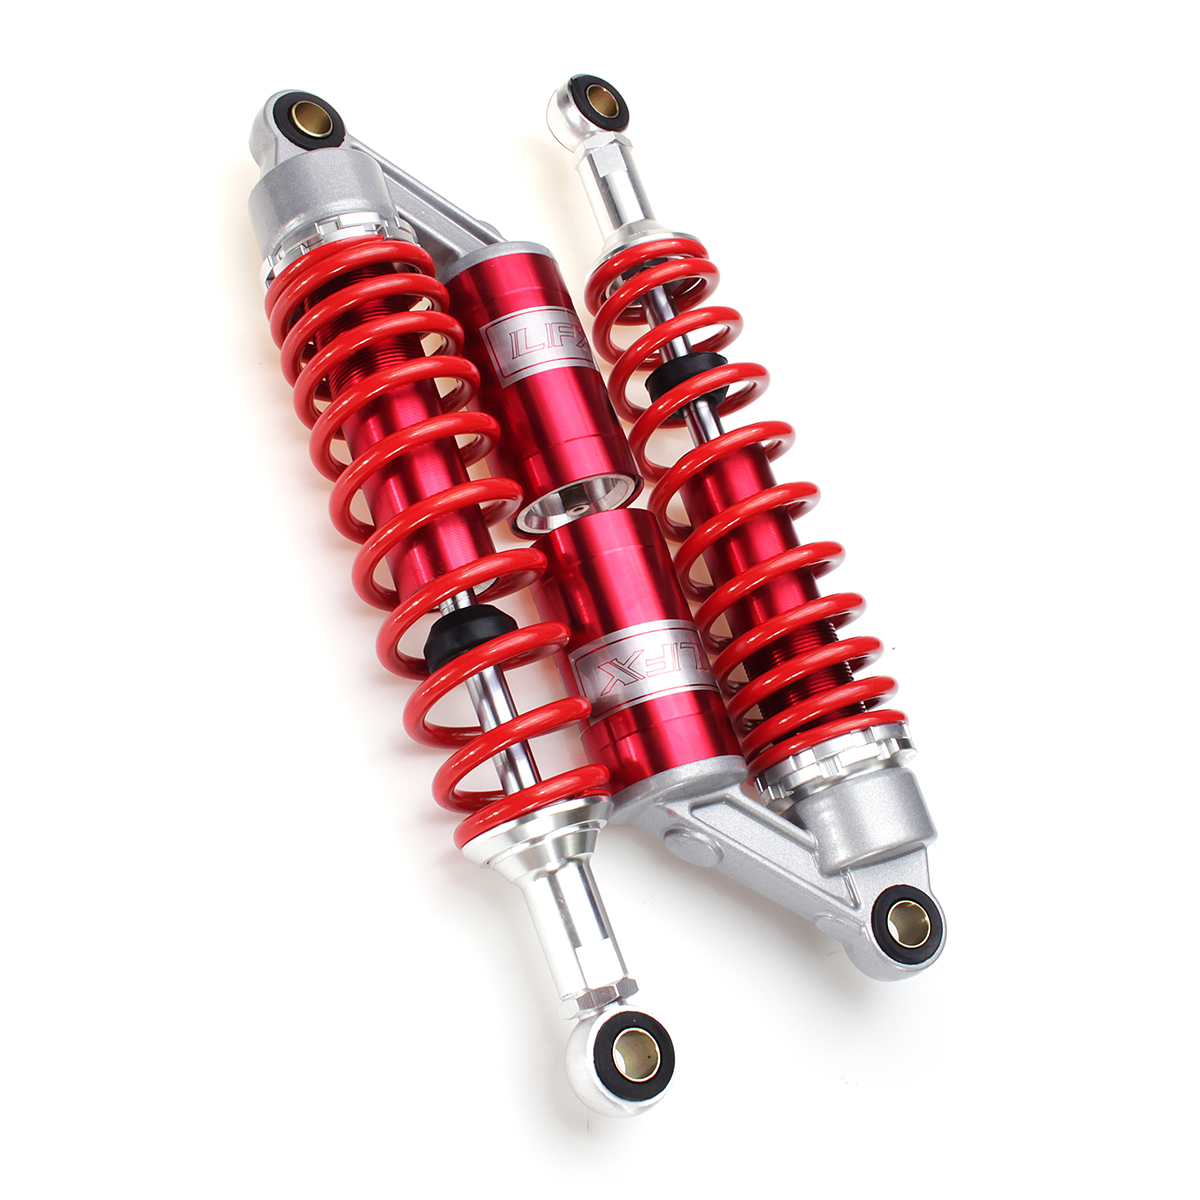 Motorcycle Shock Absorber 7mm Motorized Damping 340mm Round Connector Red